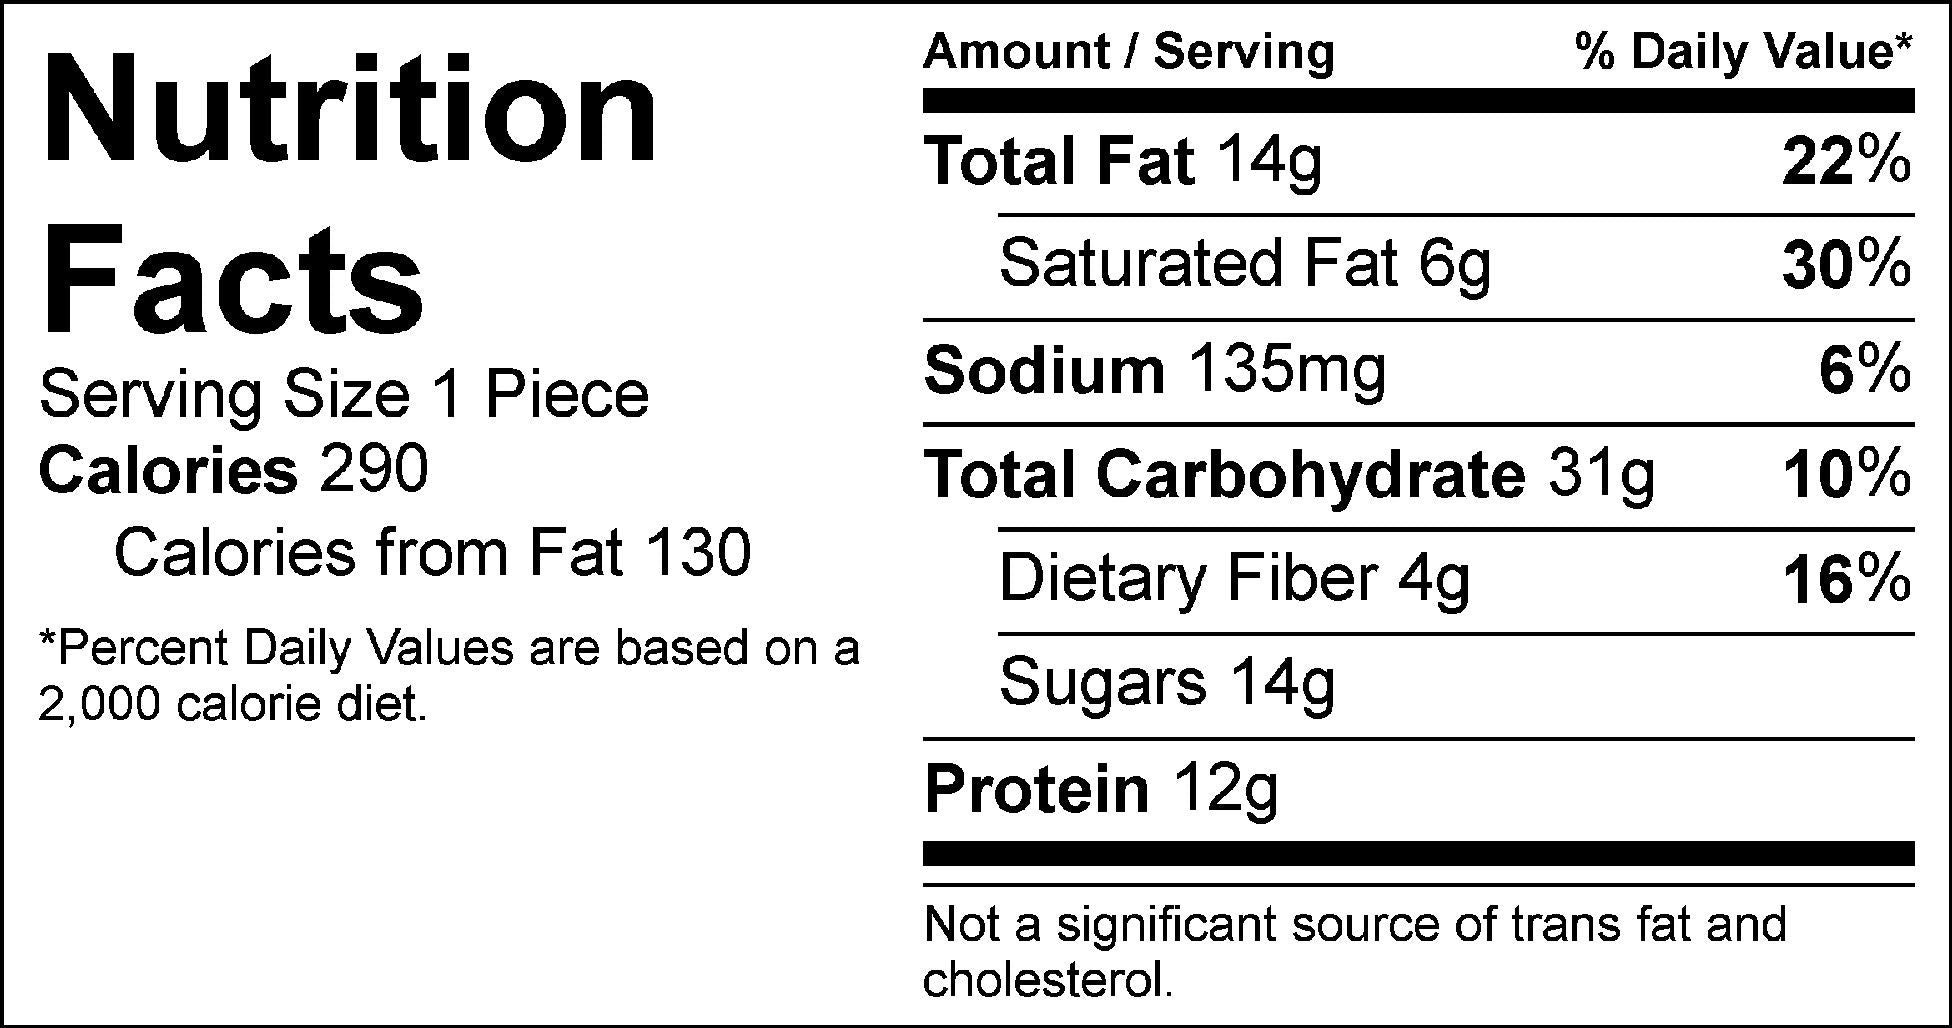 jillian's peanut butter bar nutrition facts